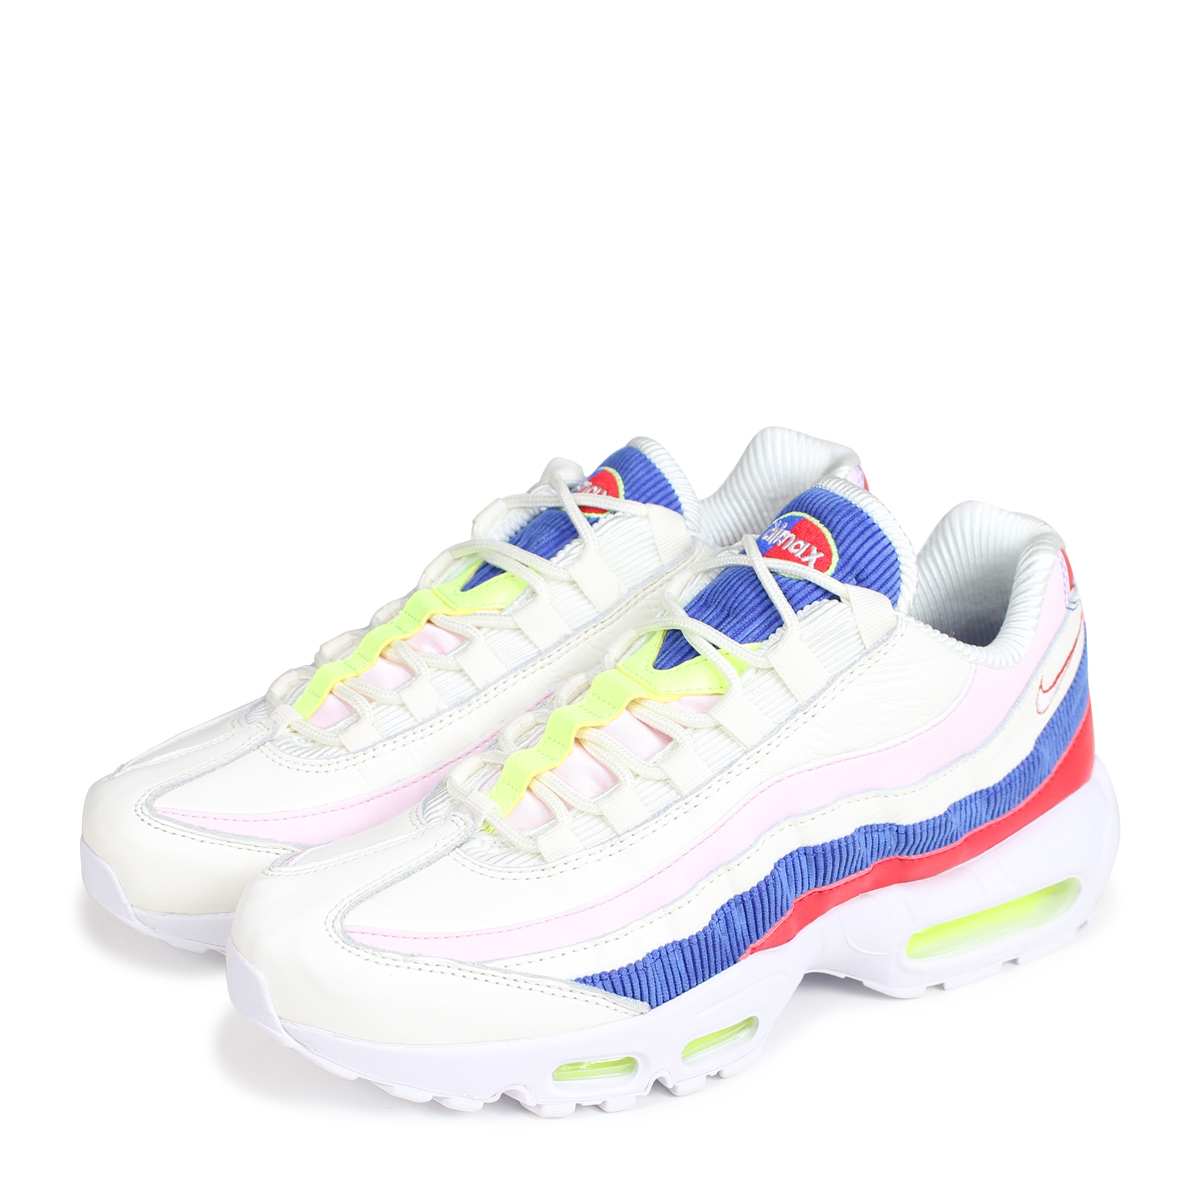 detailed pictures 1030d 3b544 Nike NIKE Air Max 95 sneakers men WMNS AIR MAX 95 SE AQ4138-101 gray [the  7/25 additional arrival] [197]